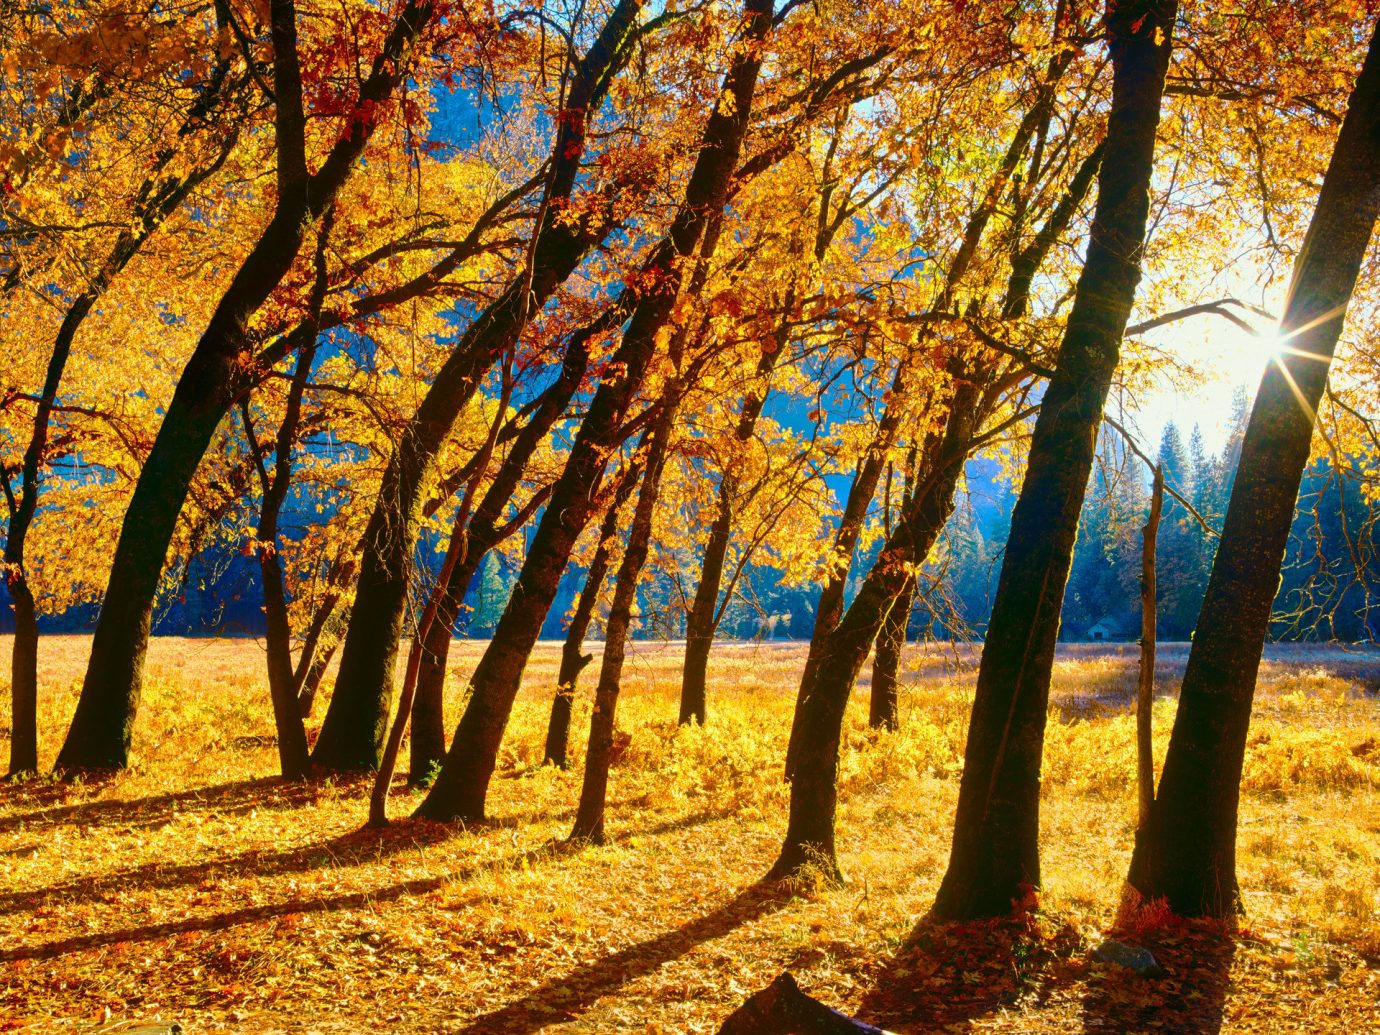 Offbeat tree outdoor grass habitat Nature plant natural environment season autumn sunlight leaf morning Forest woody plant woodland branch park evening Sunset area wooded